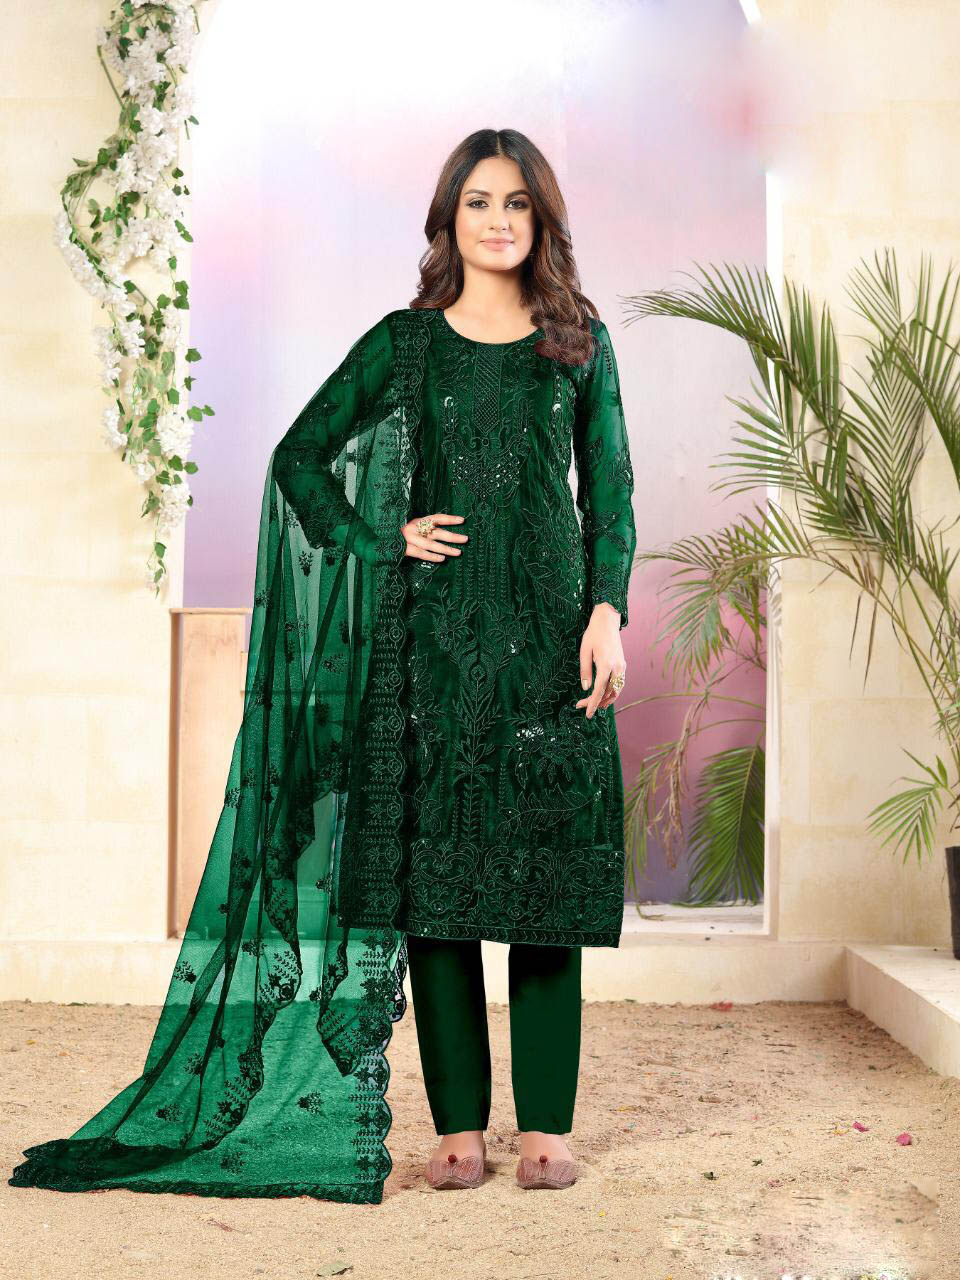 New Latest Outfits Green Color Best Net Designer Online Cost